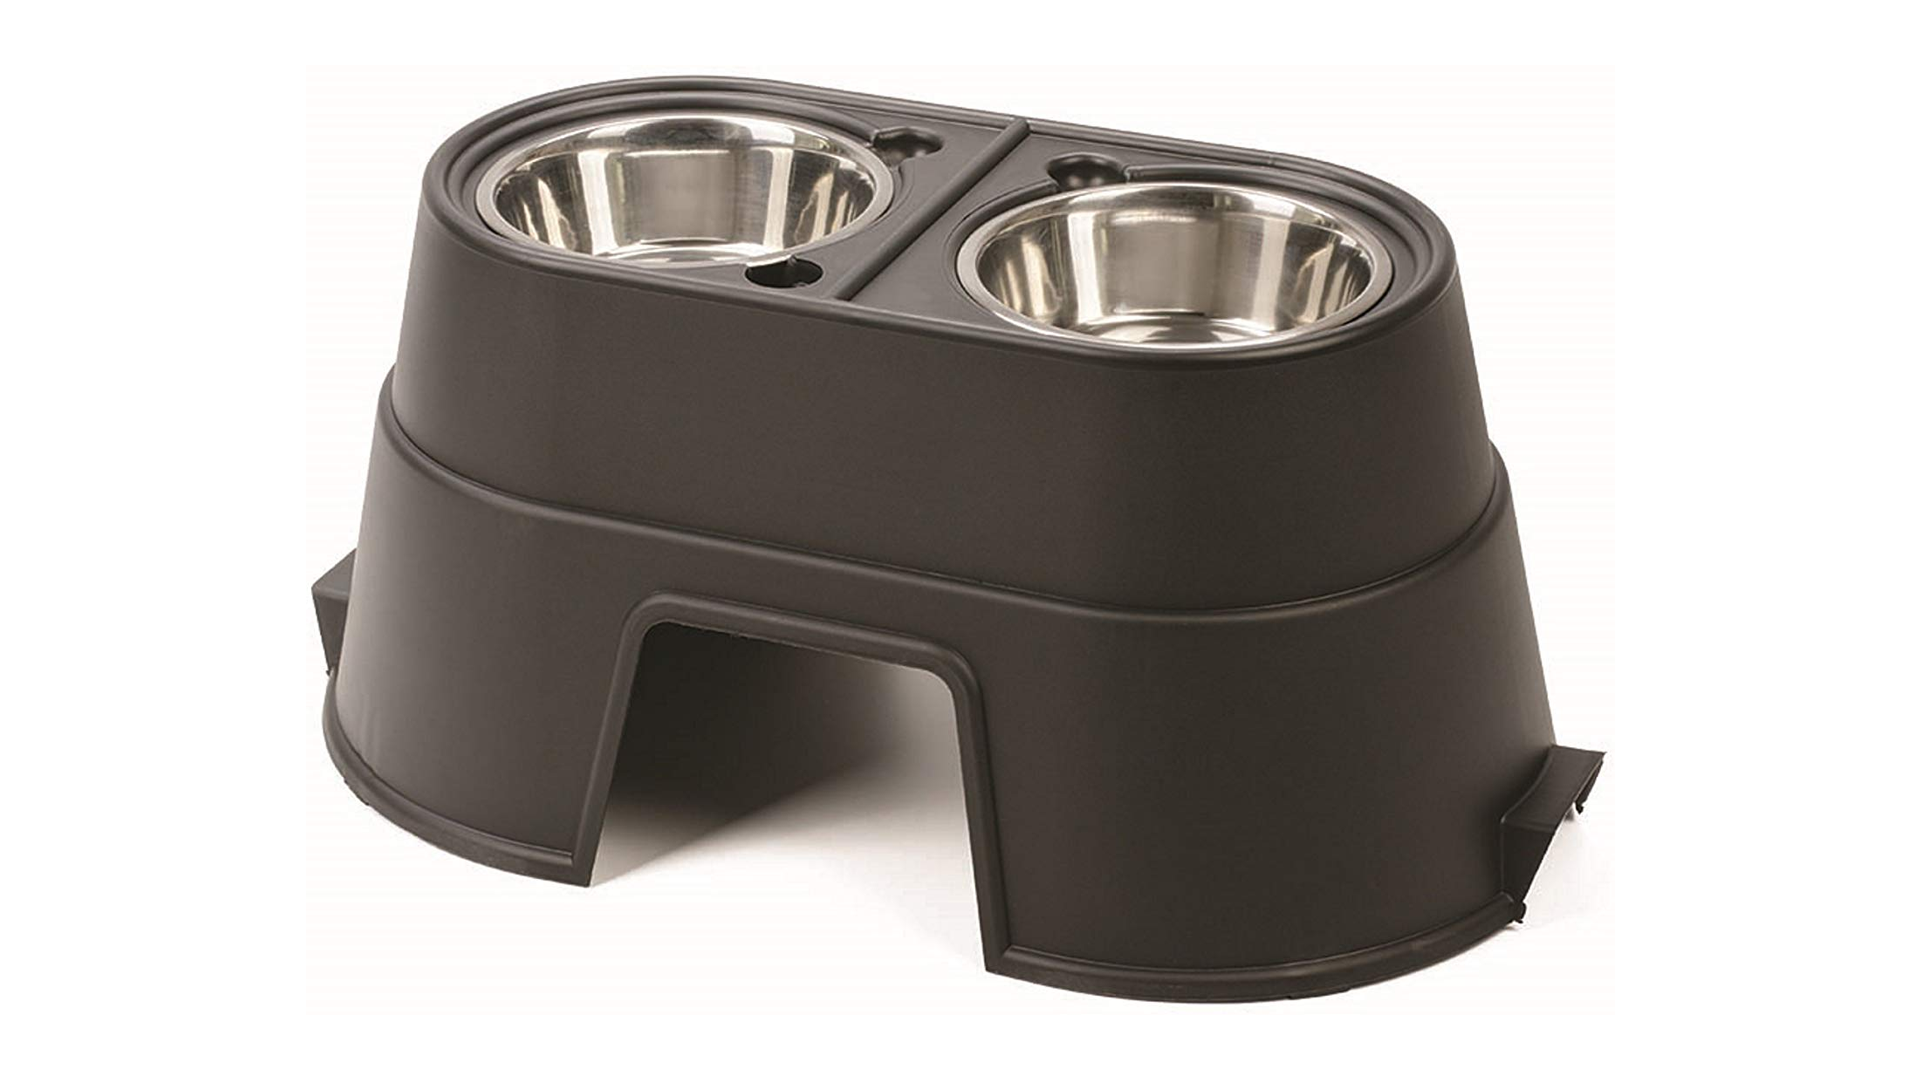 The OurPets Elevated Dog Bowls